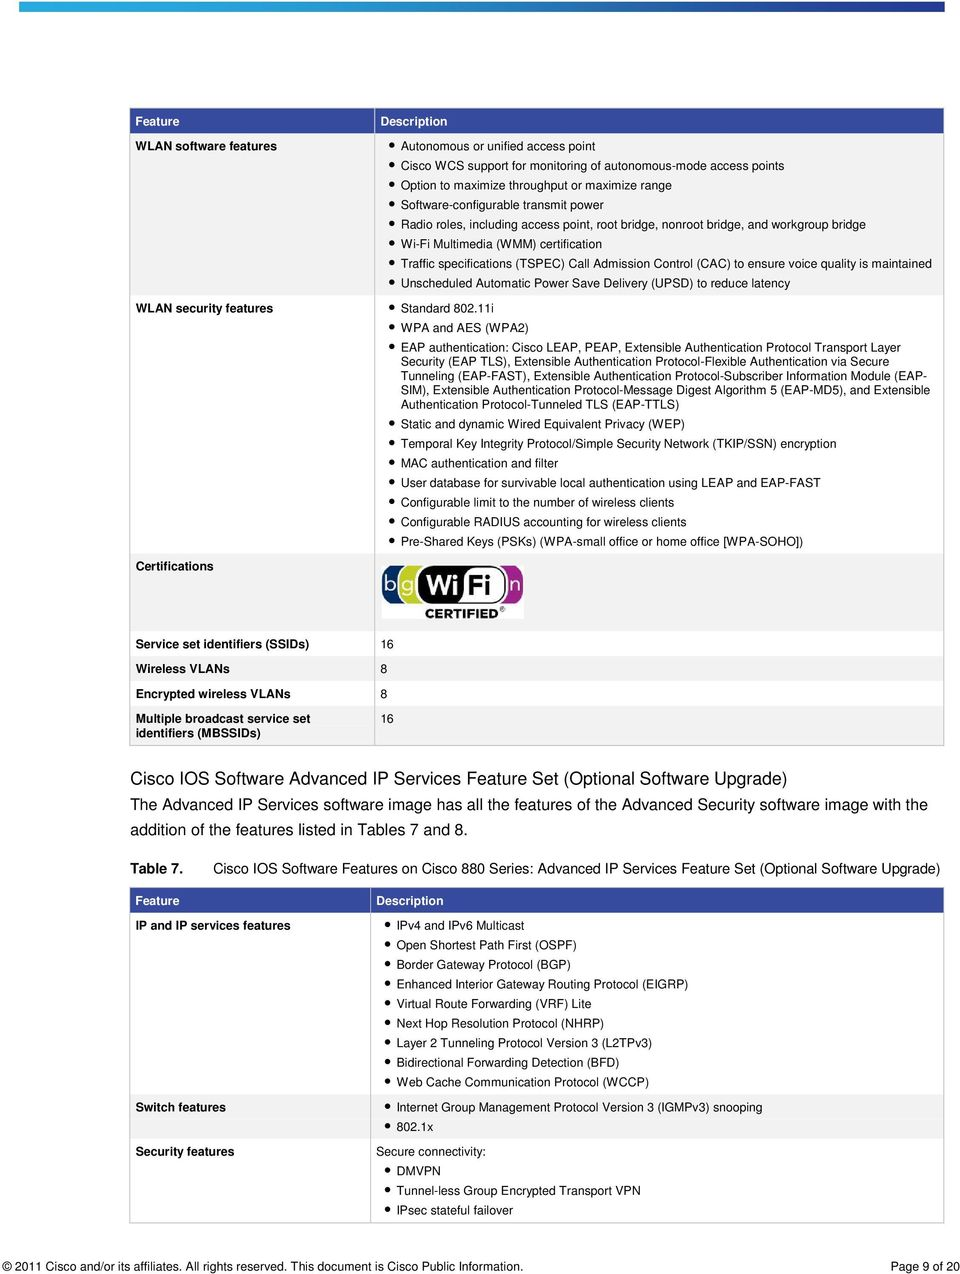 Cisco 880 Series Integrated Services Routers - PDF